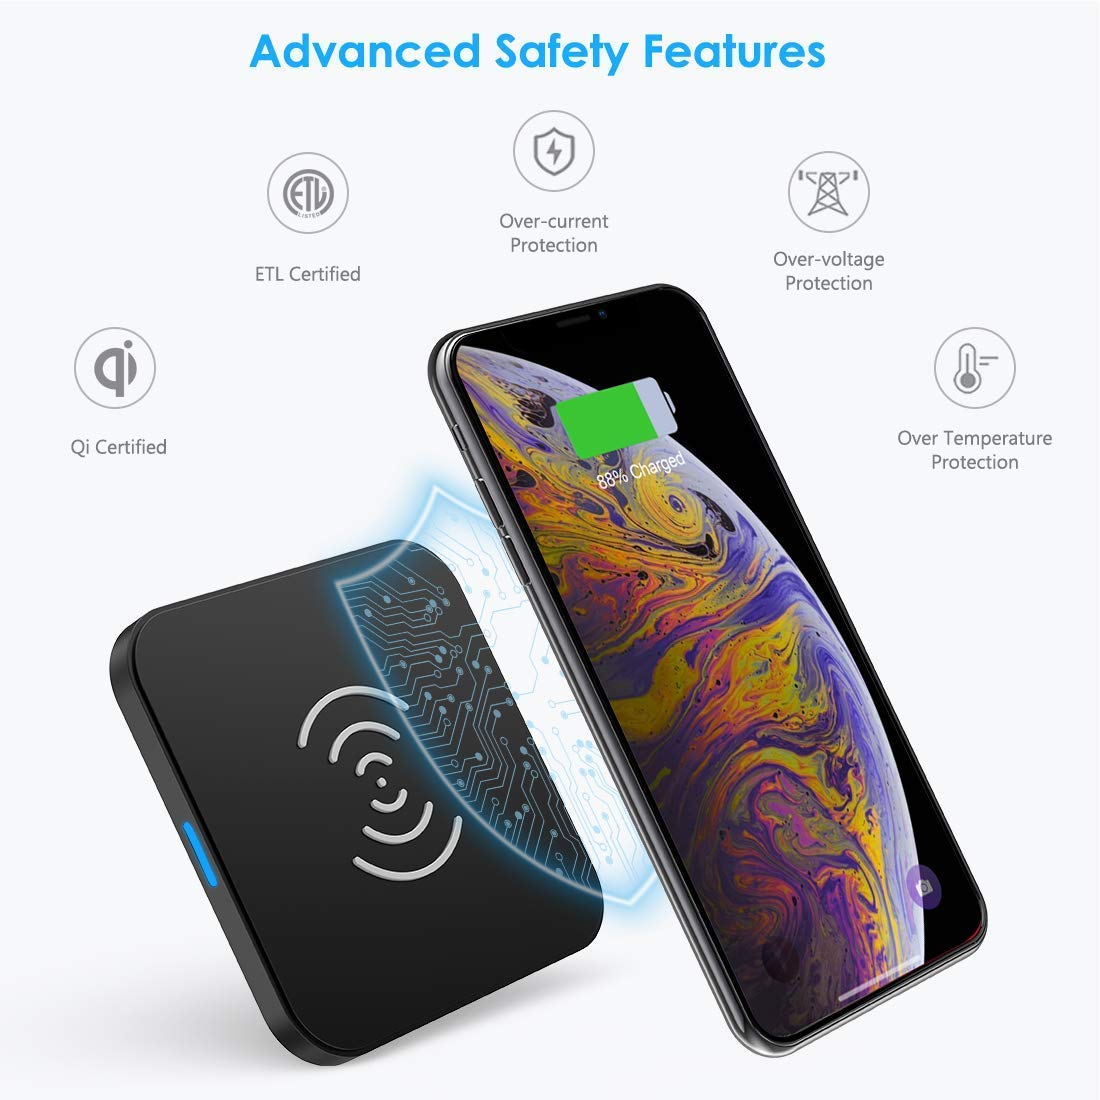 CHOETECH Wireless Charger, Qi Certified Wireless Charging Pad Compatible with iPhone Xs Max/XS/XR/X/8/8 Plus, Samsung Galaxy S10/S10+/S10E/Note 9/S9/S9+/Note 8/S8/S7, New AirPods and More by CHOETECH (Image #5)